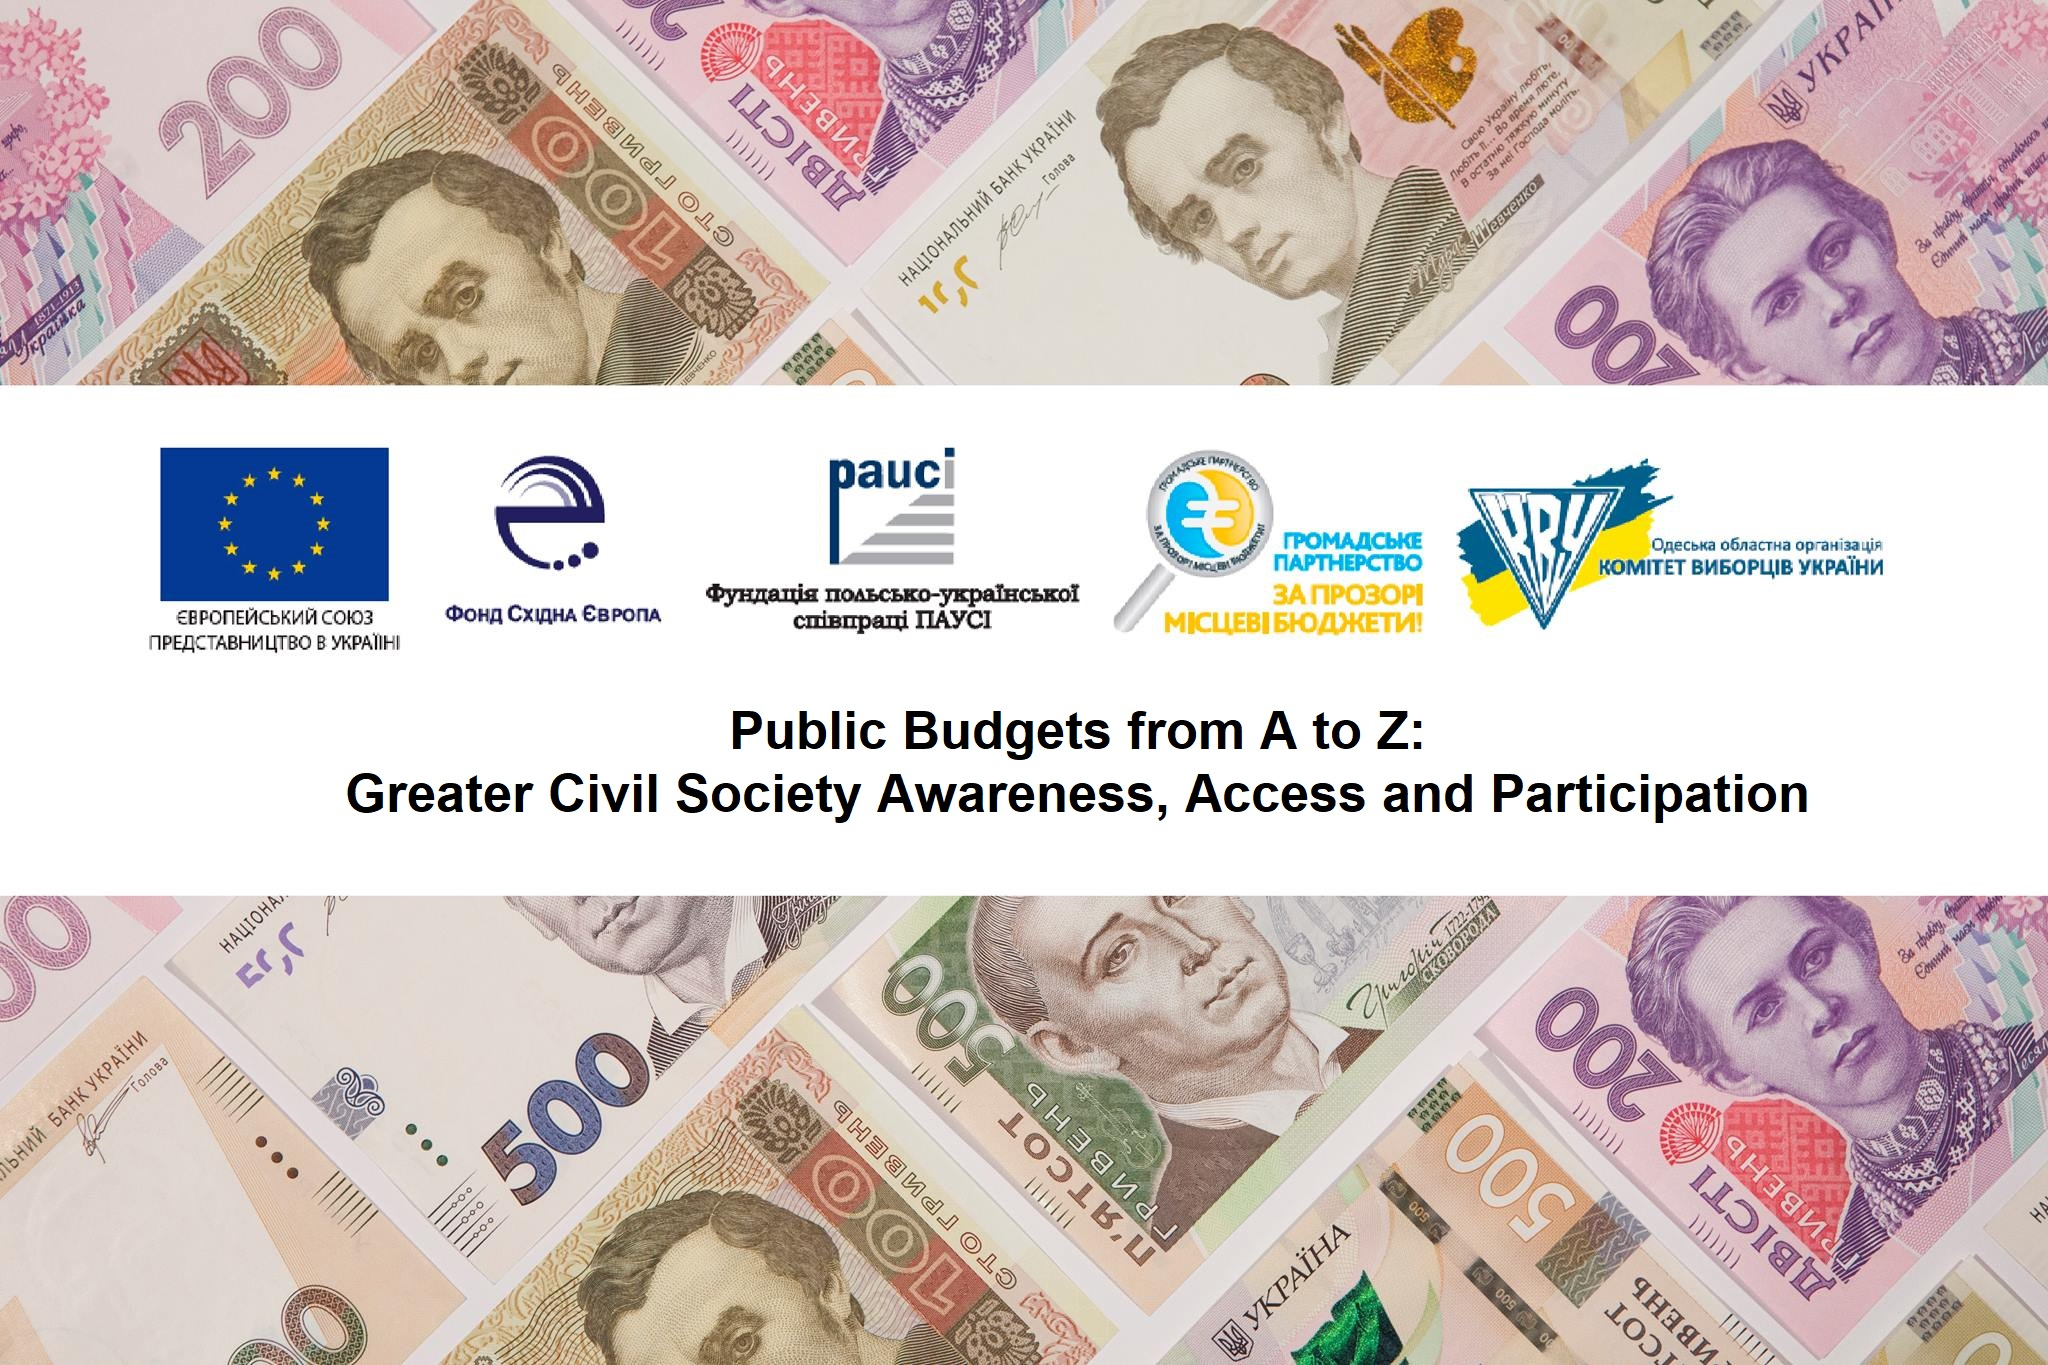 Strengthening the participation of vulnerable groups in the budgetary process